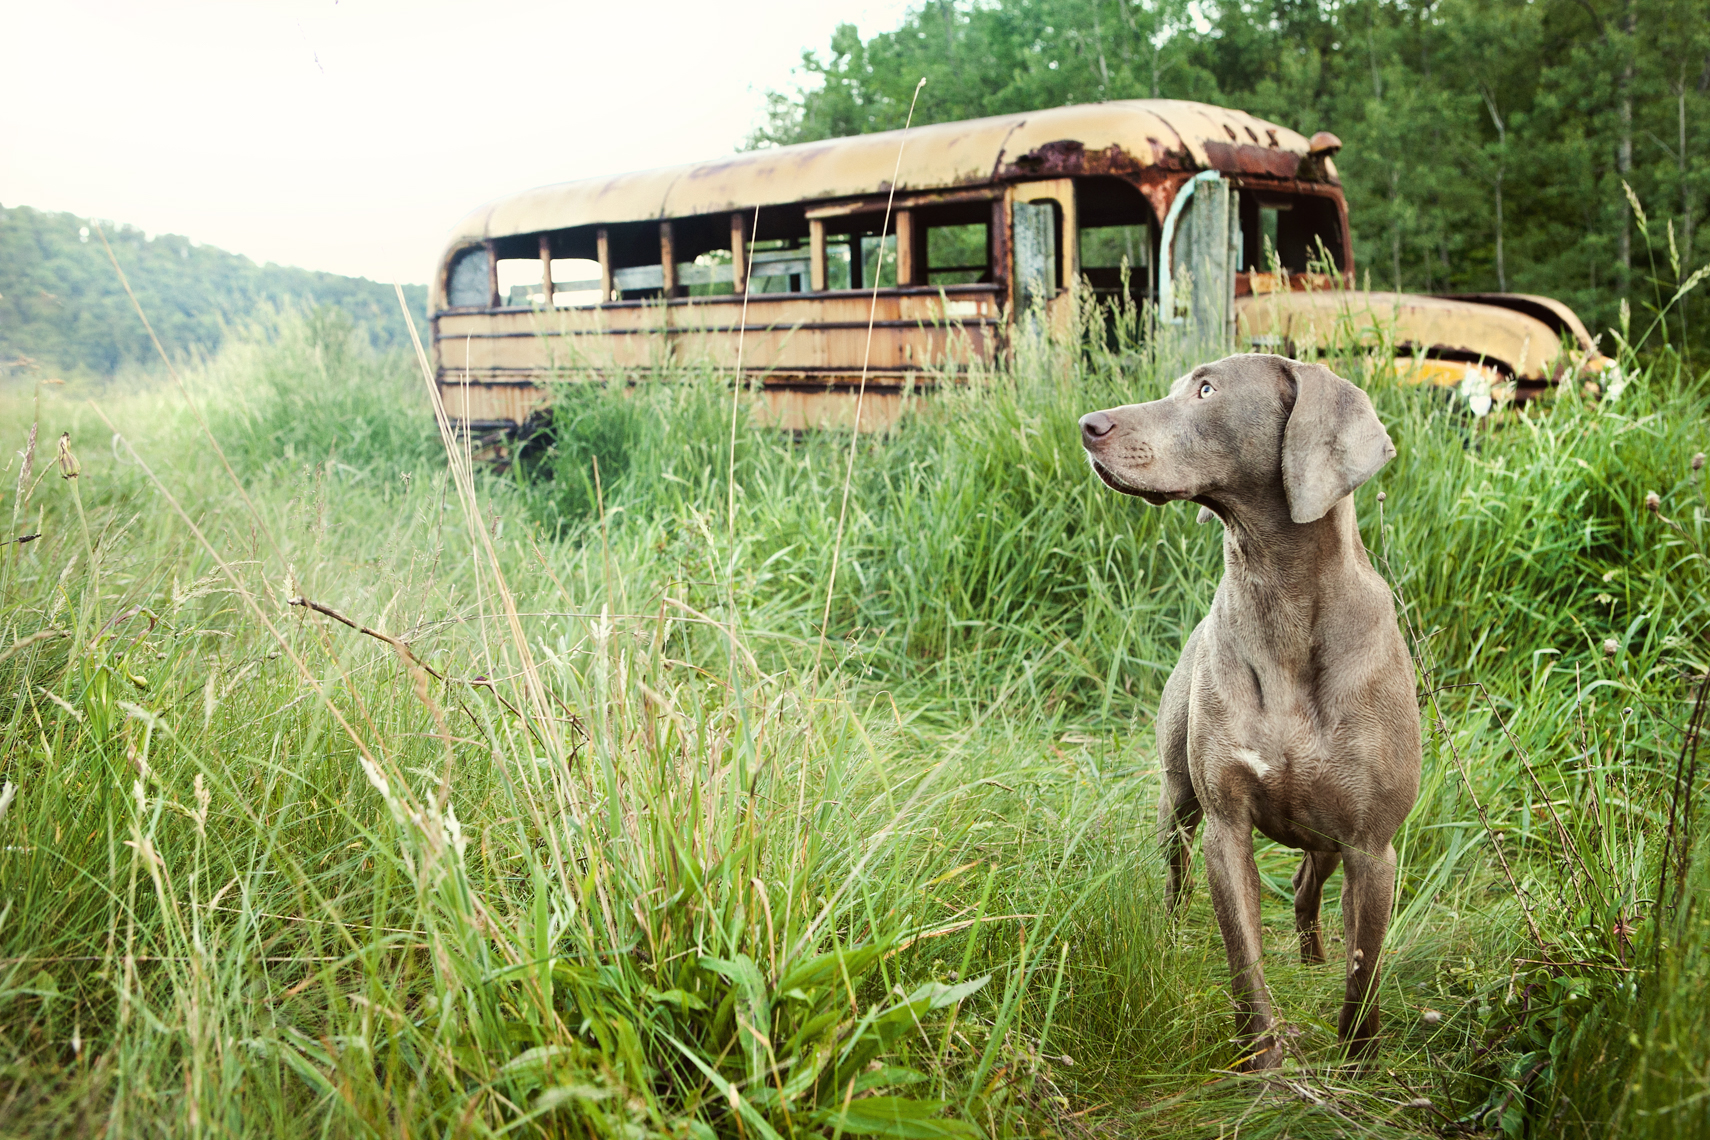 Weimaraner in a Pennsylvania field